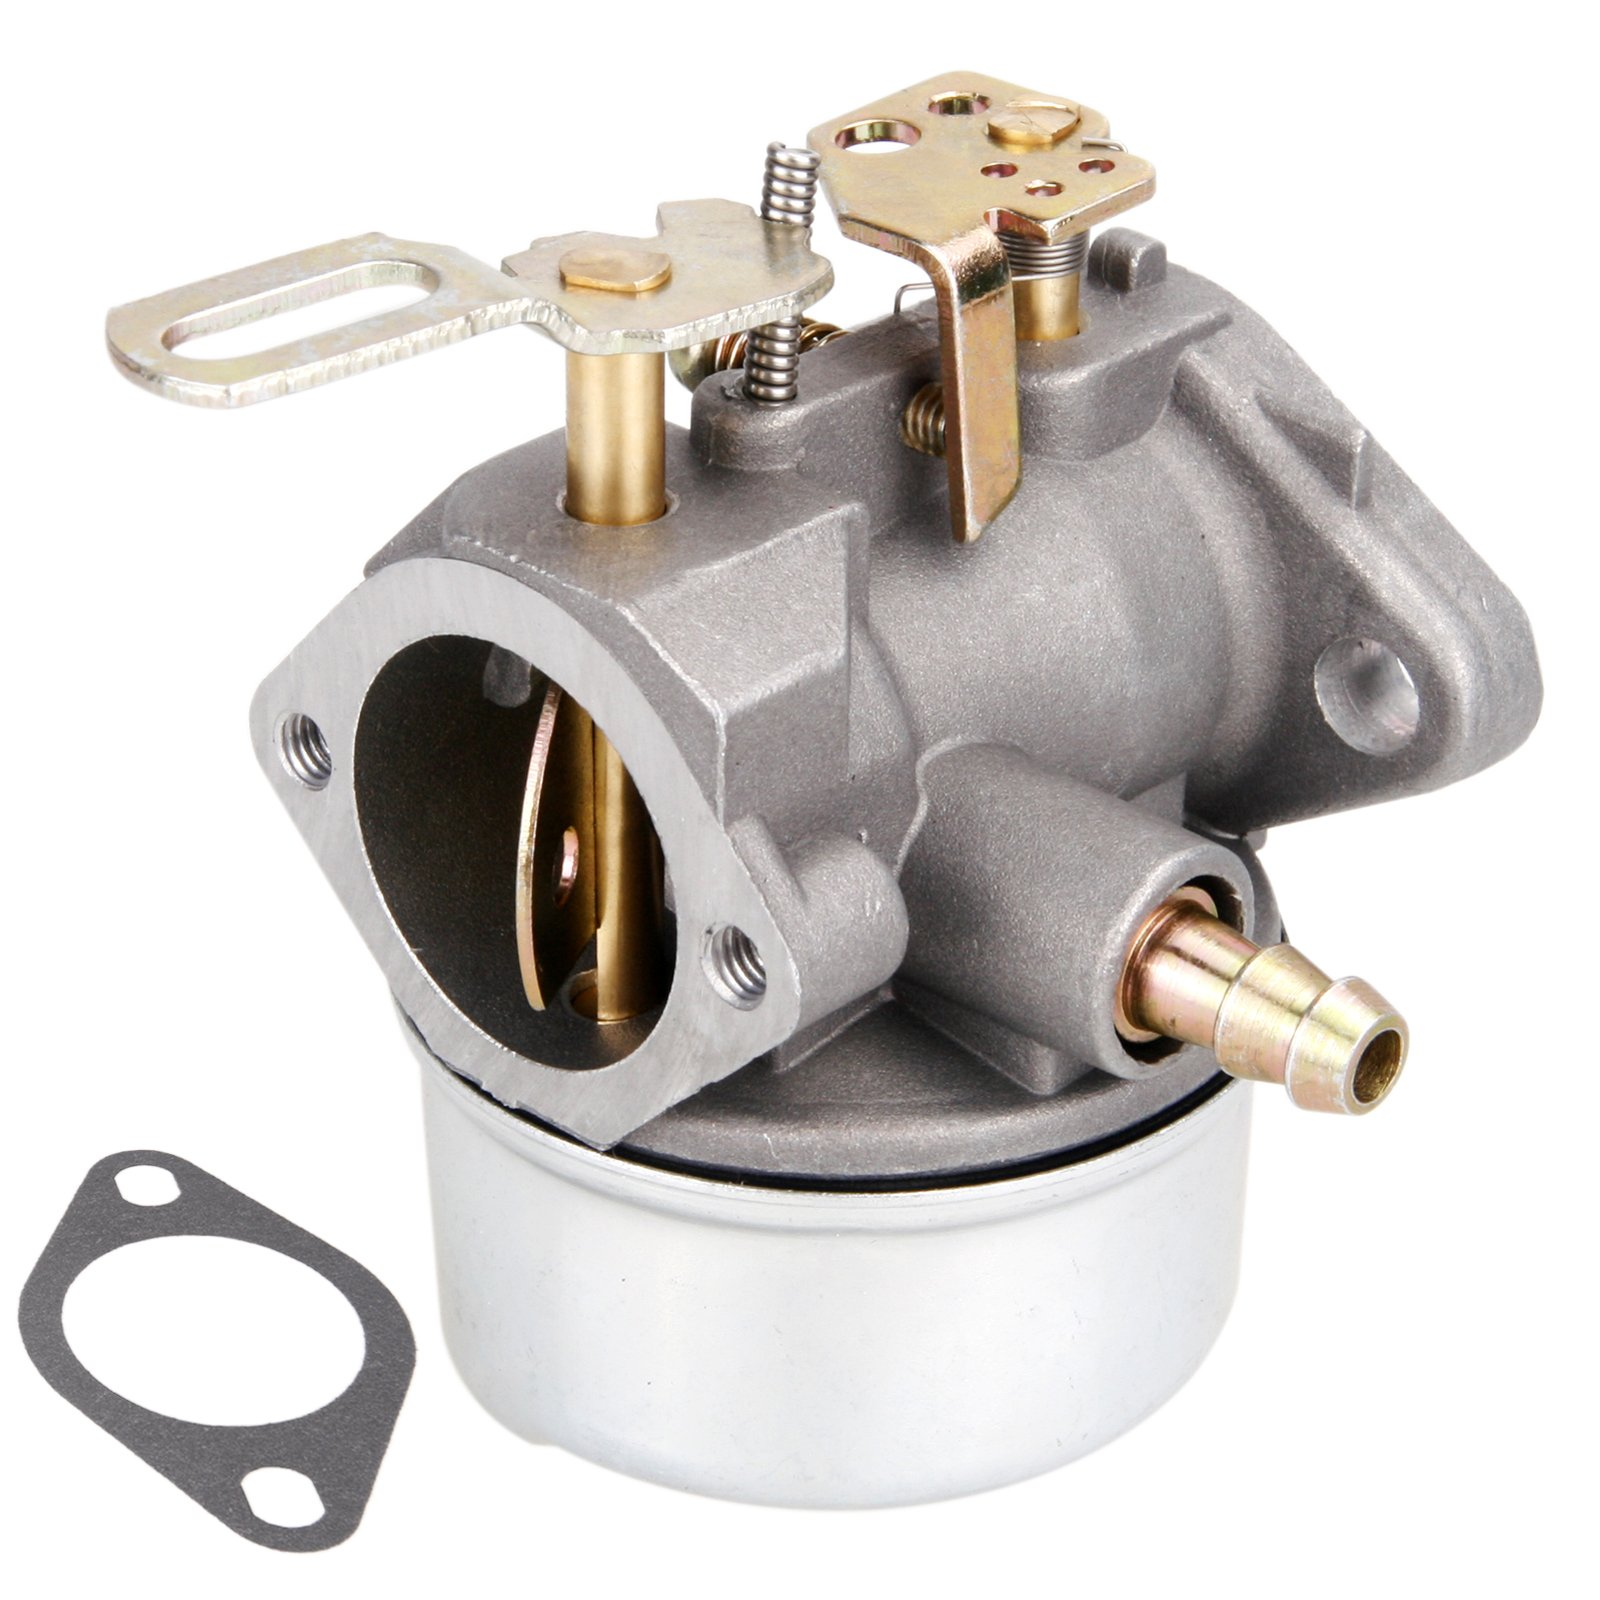 Pinty Carburetor HMSK80 HMSK90 LH318SA LH358SA for Tecumseh 8HP 9HP 10HP HMSK80 HMSK90 Snow Blower Generator Chipper